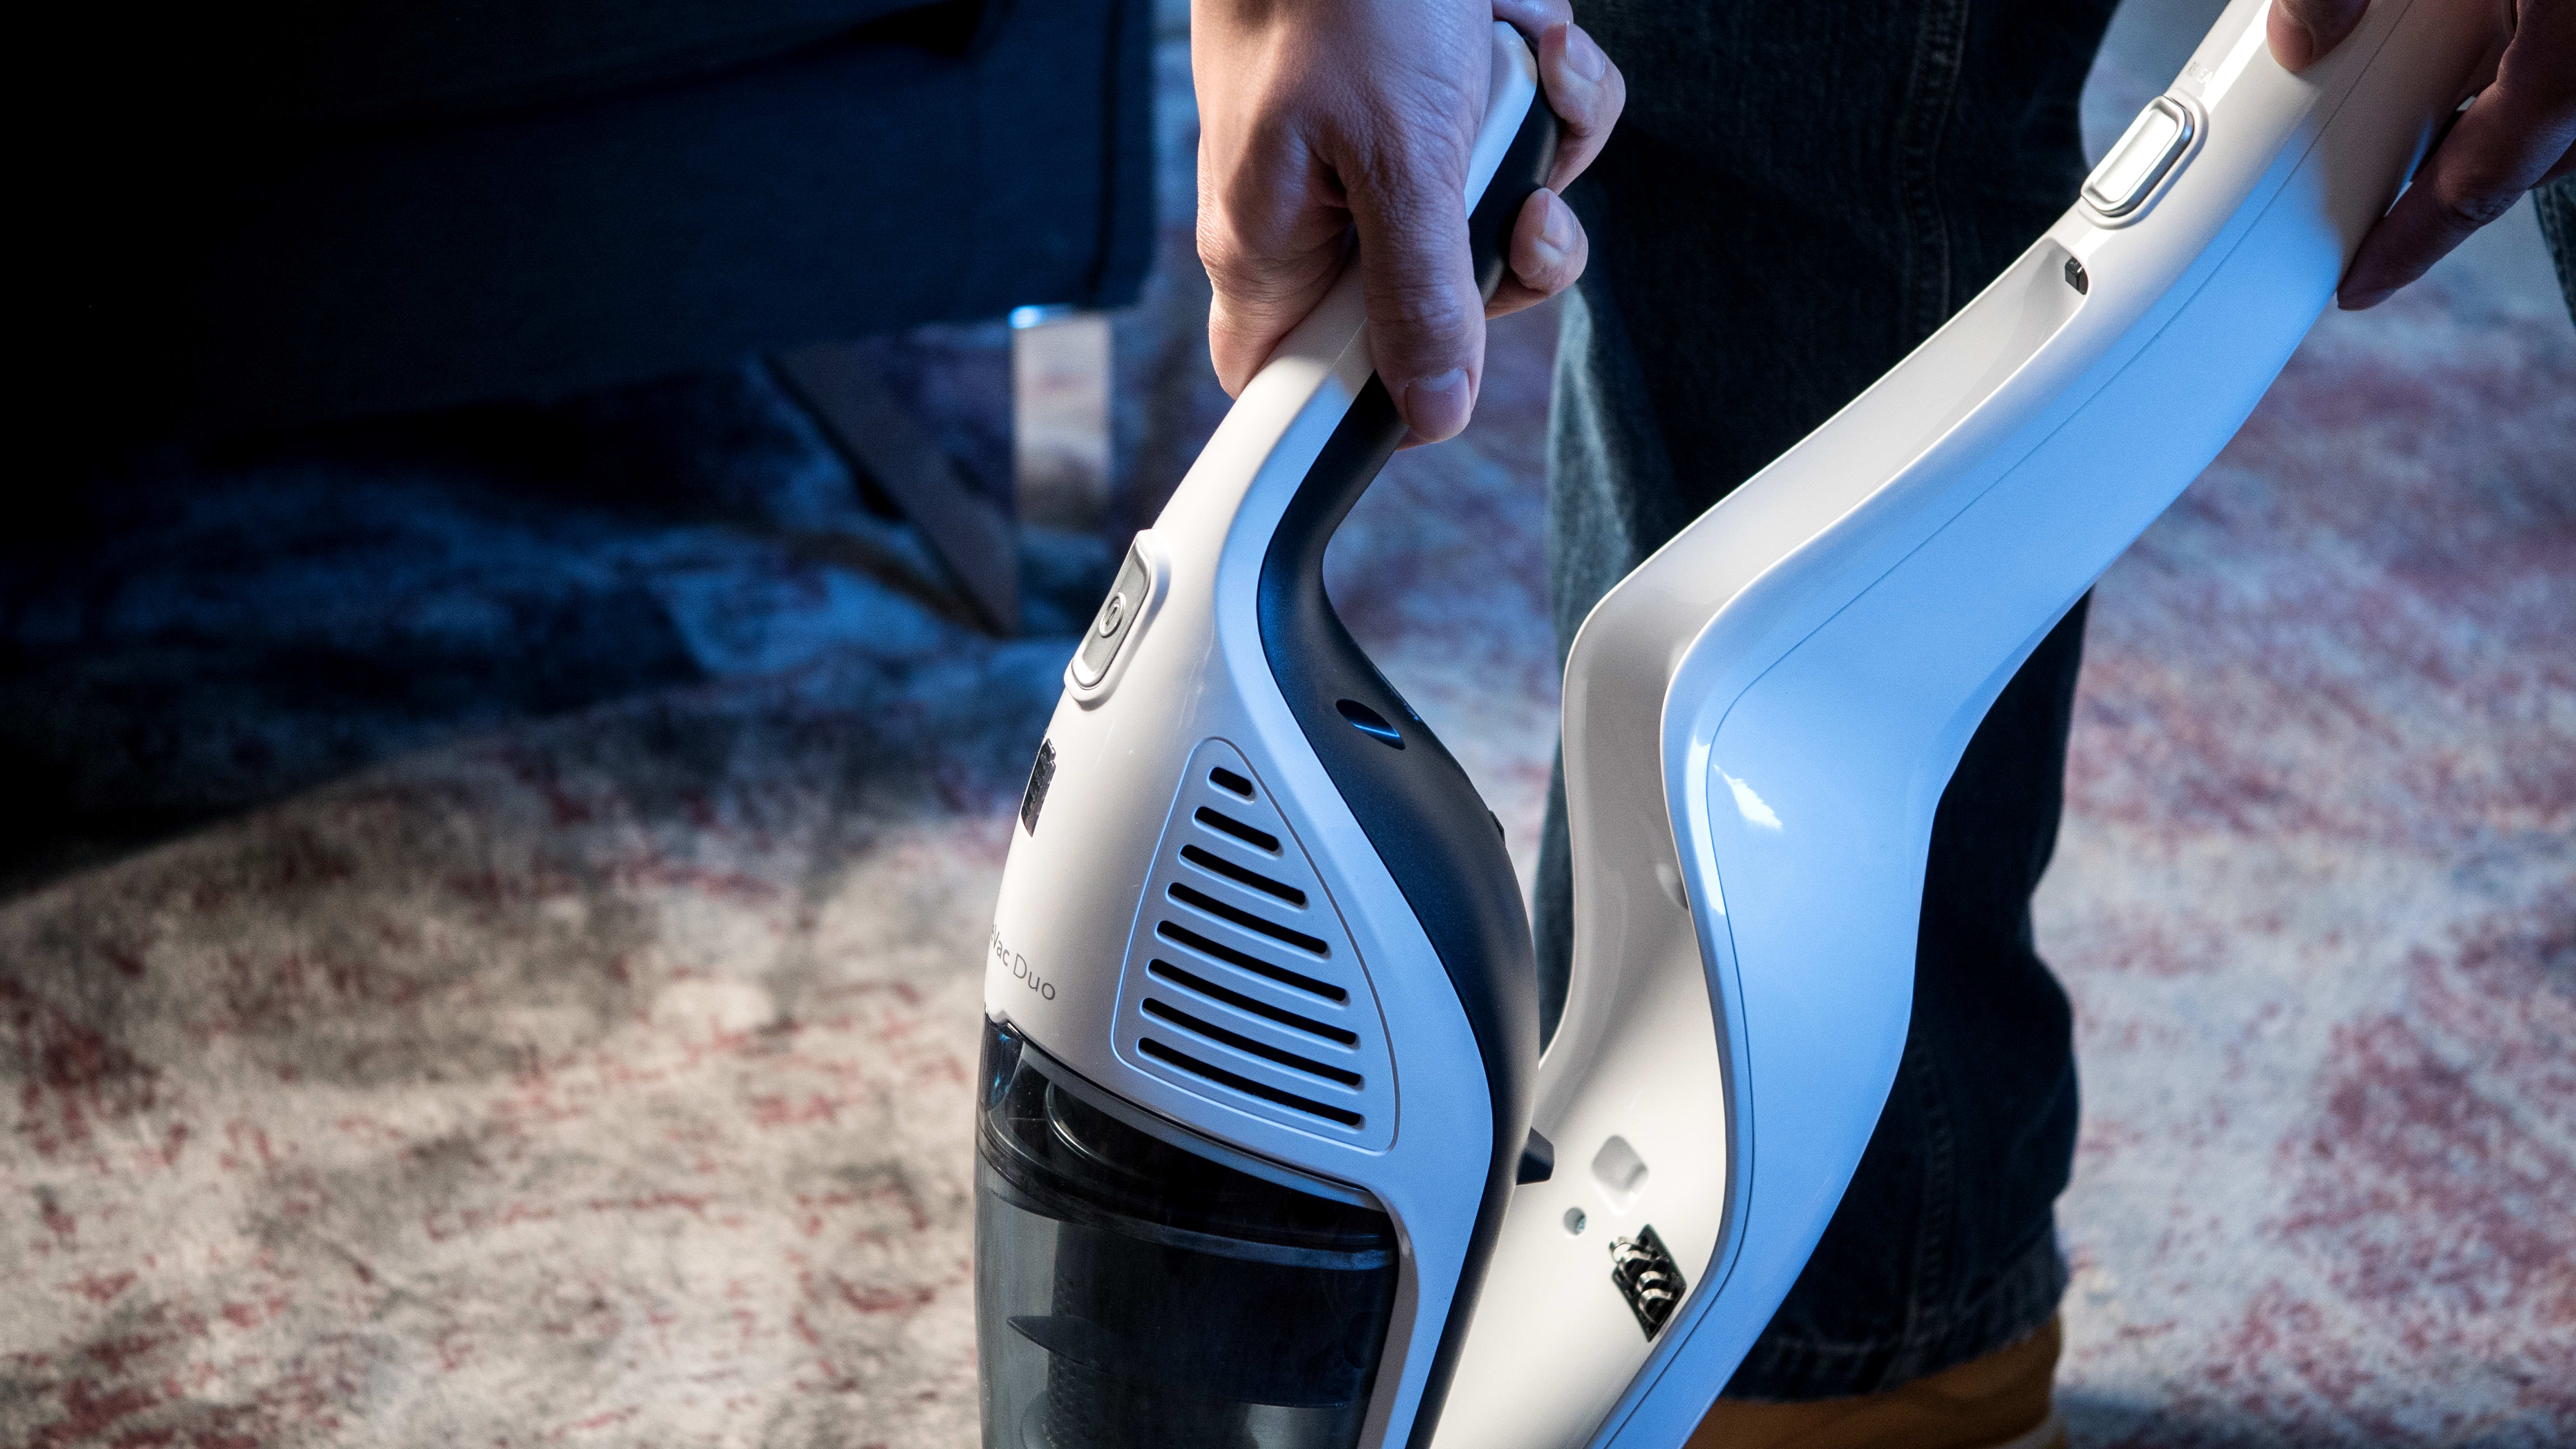 Being a 2-in-1, the HomeVac Duo contains a built-in hand vac.